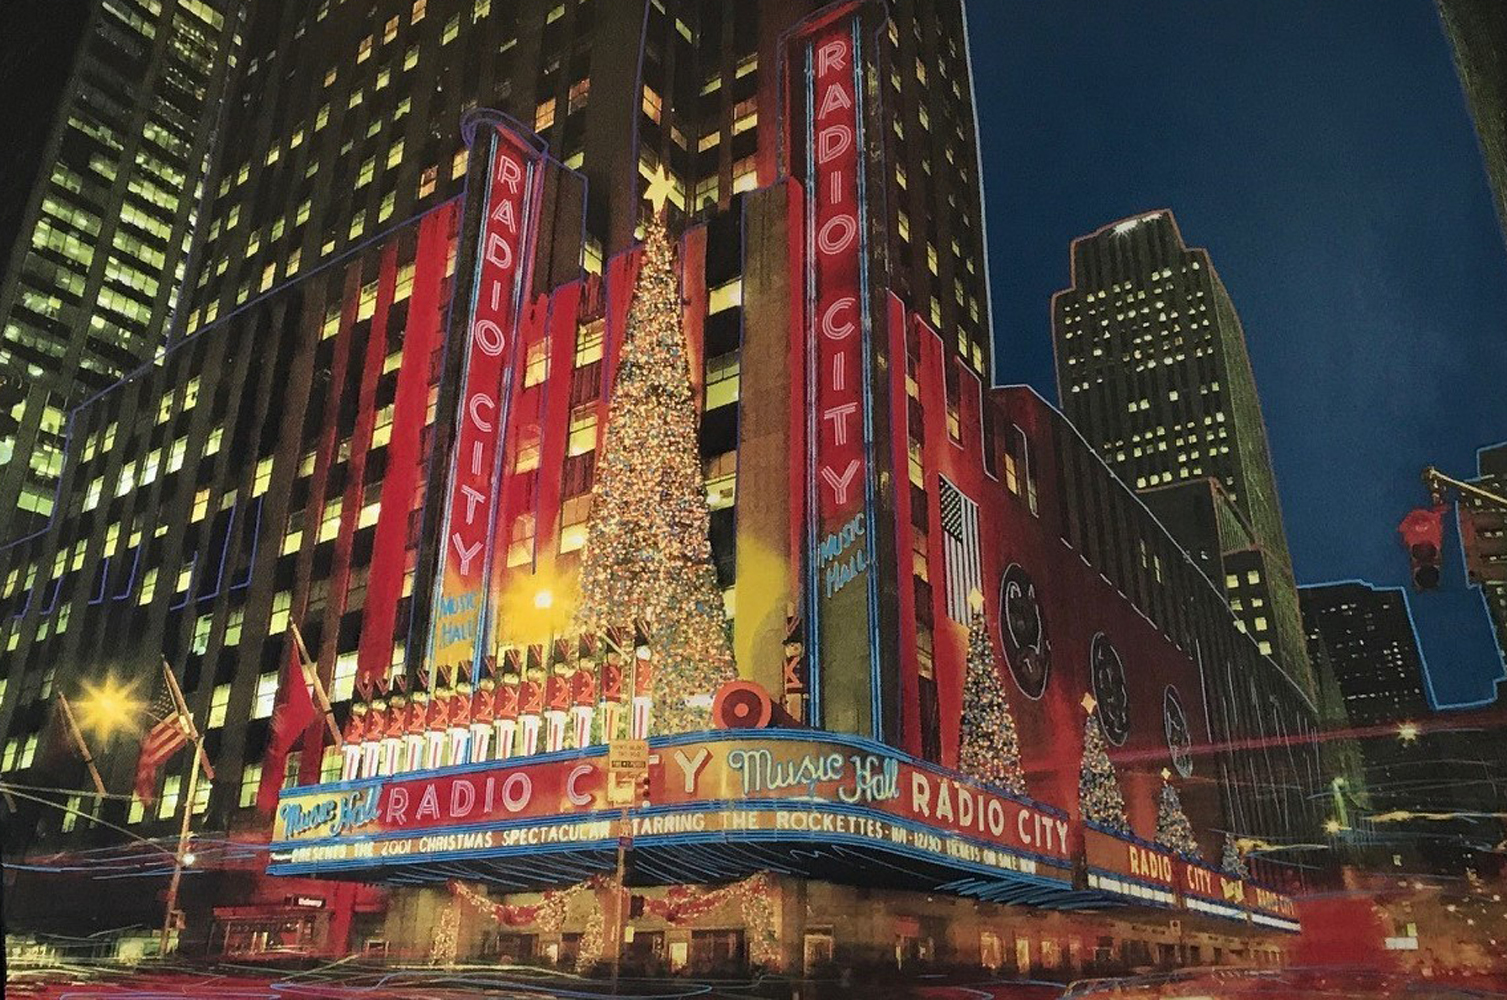 Radio City Music Hall 2008 72x46 New York